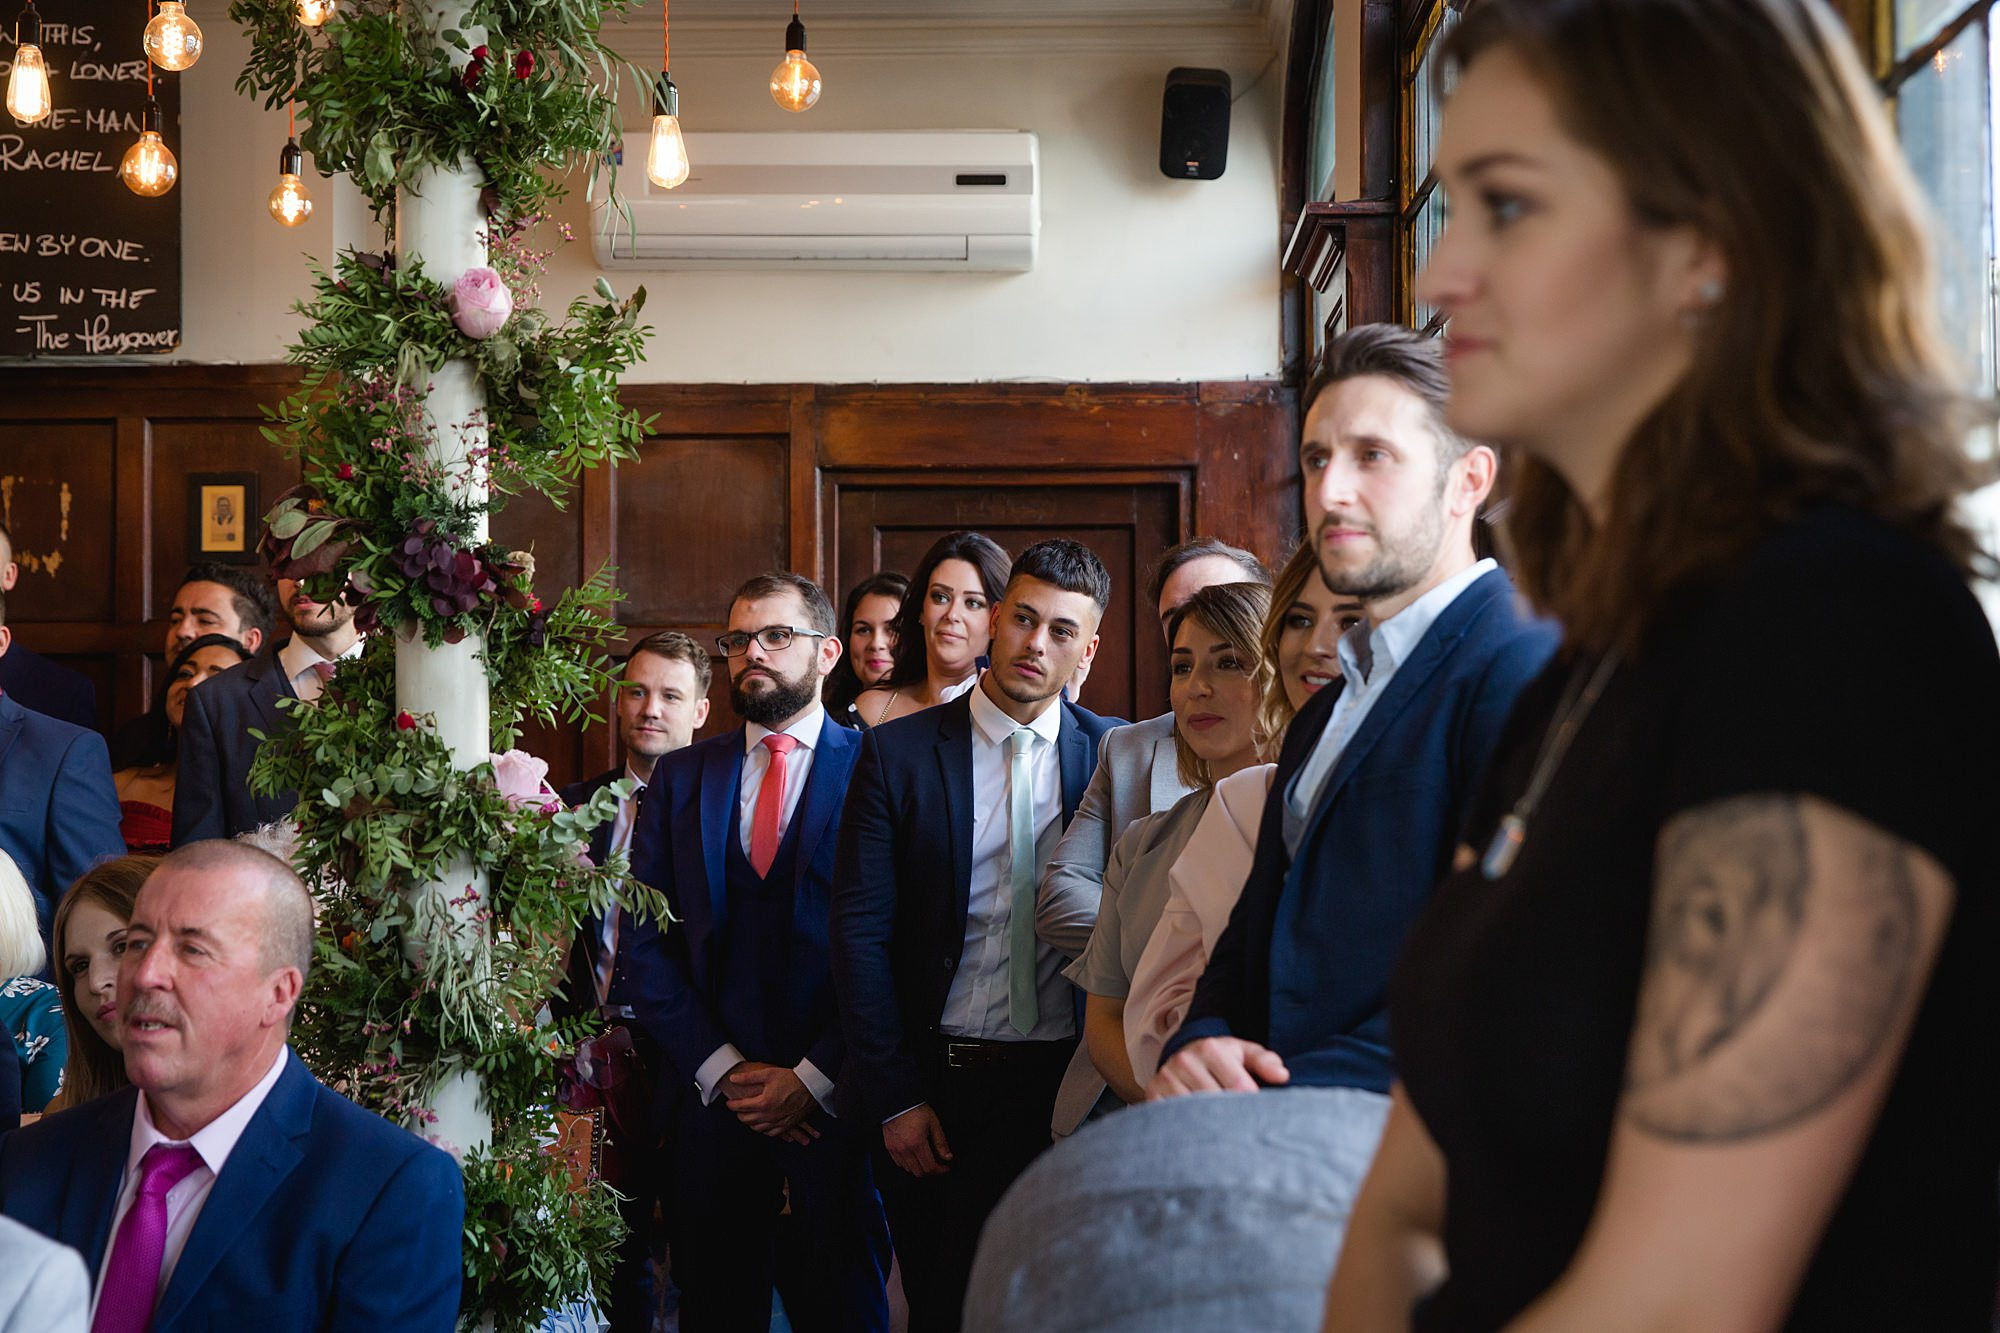 Prince albert camden wedding guests watch ceremony